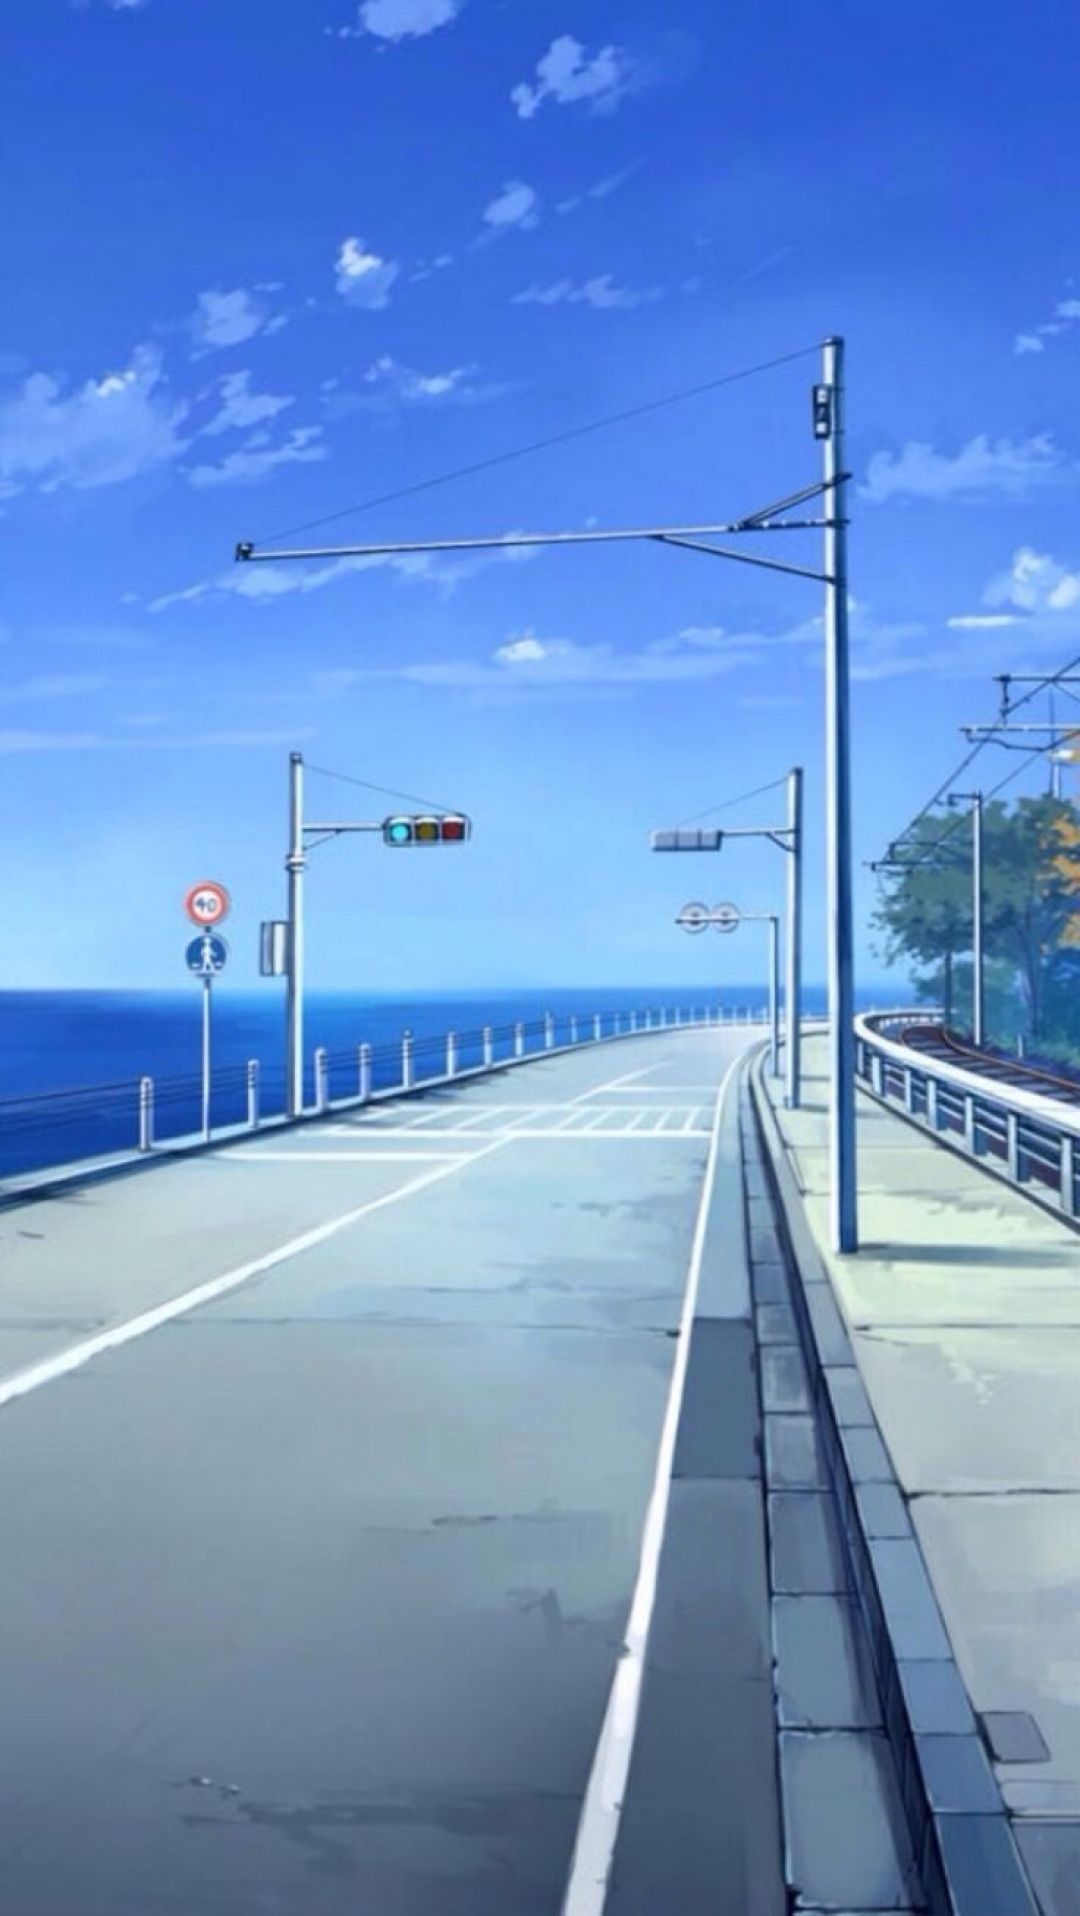 anime aesthetic 1080p hd wallpapers